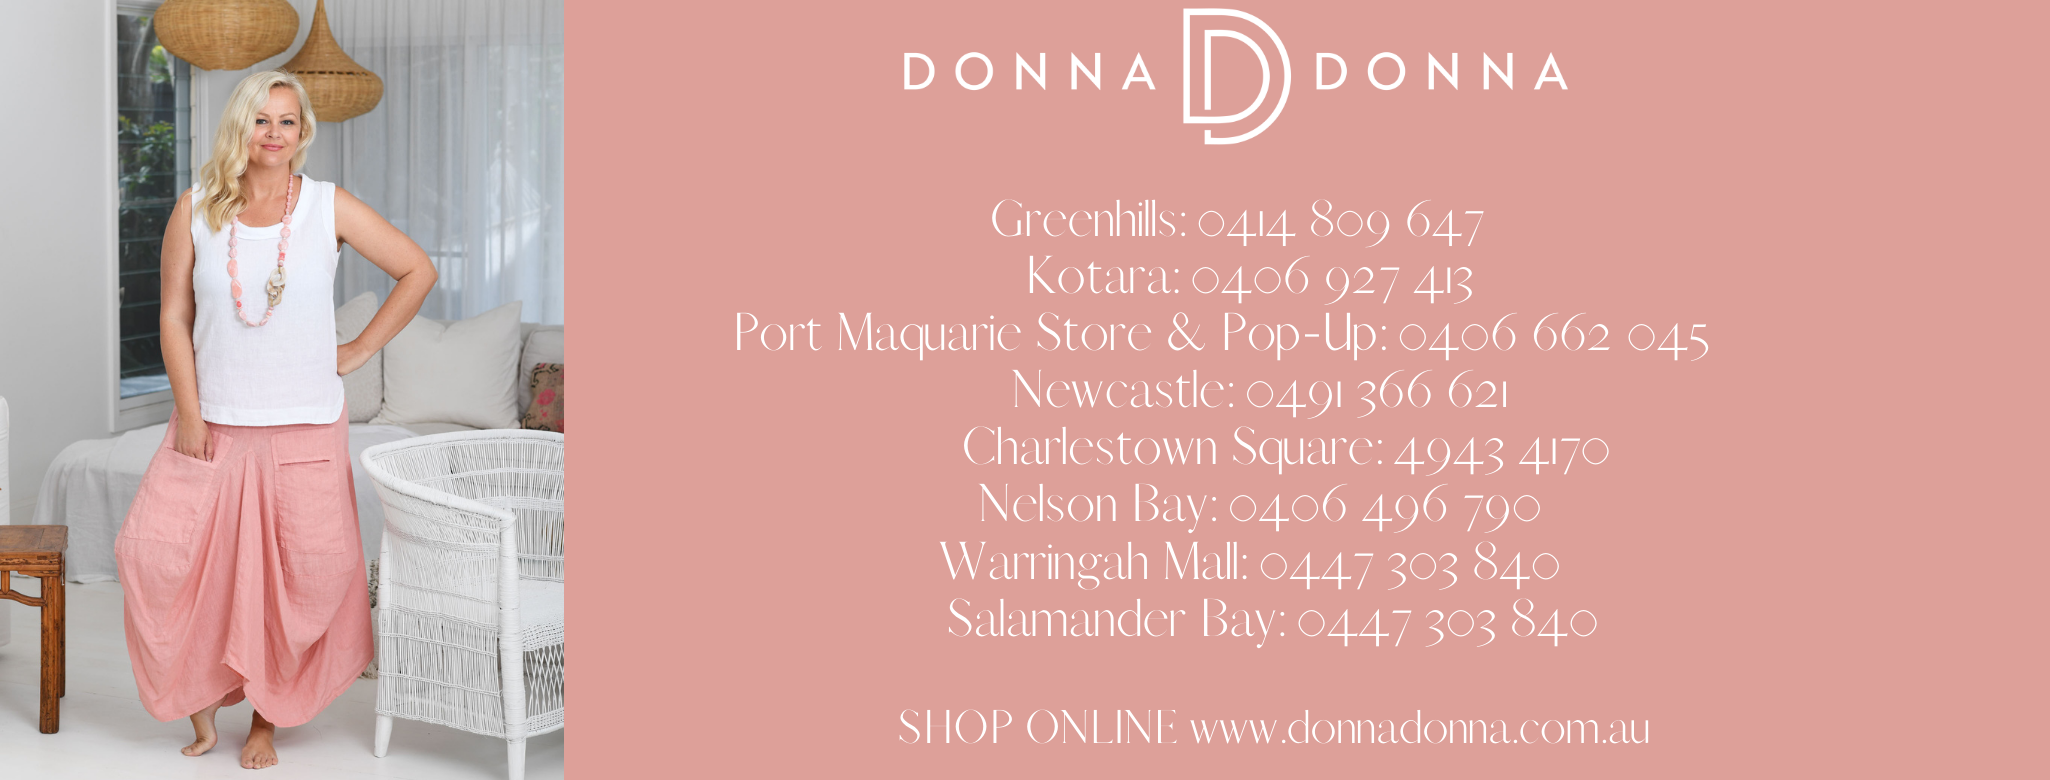 Store Phone Numbers